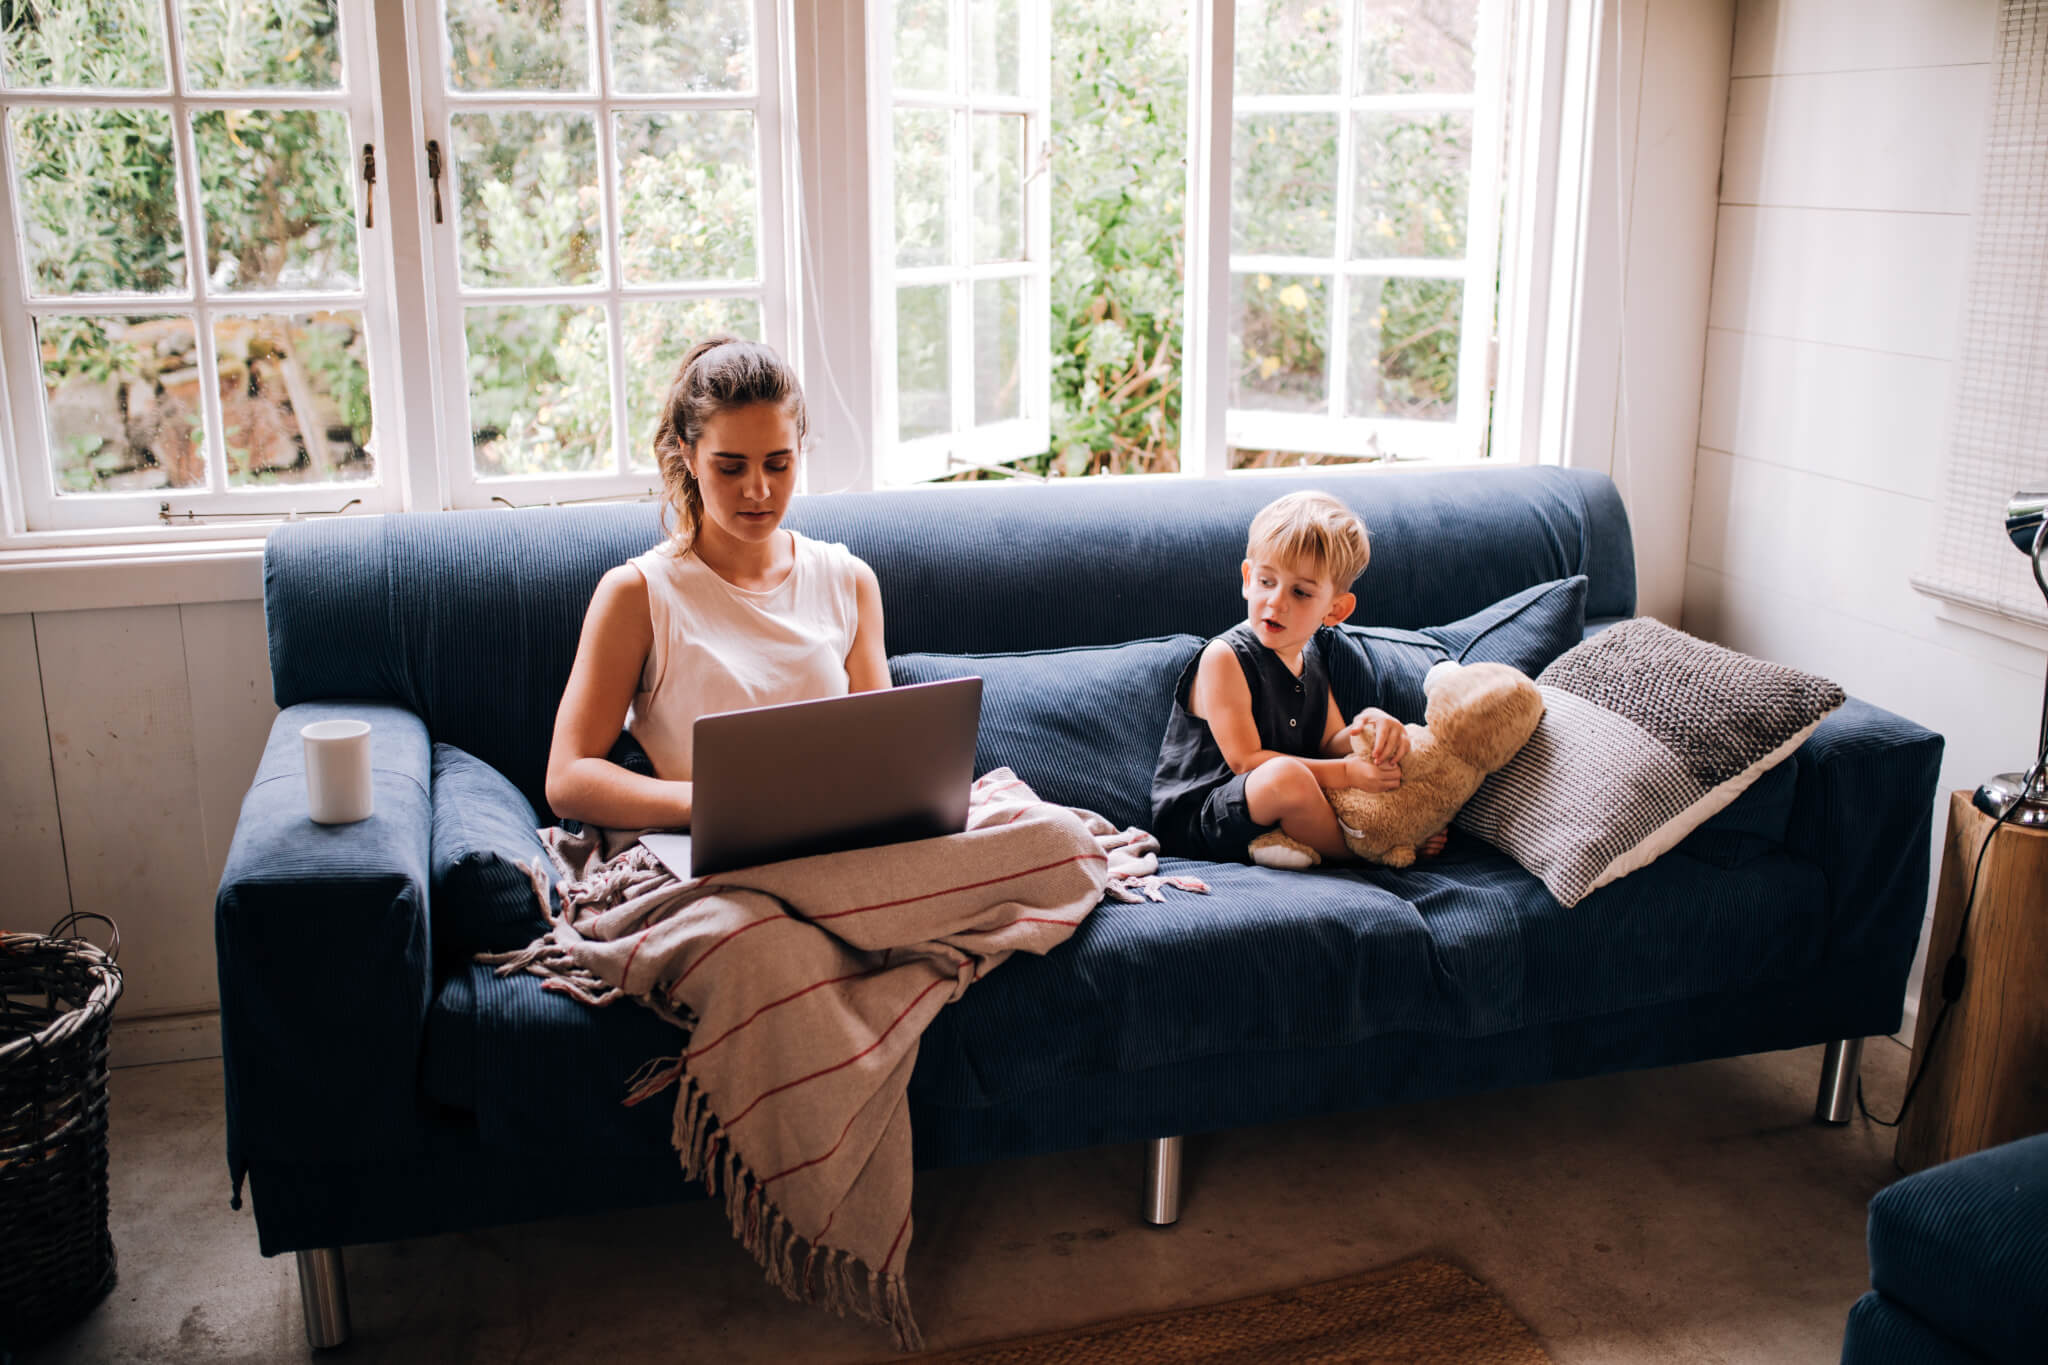 business-shopping-child-mother-son-home-laptop-work-online | online wills vs. lawyer